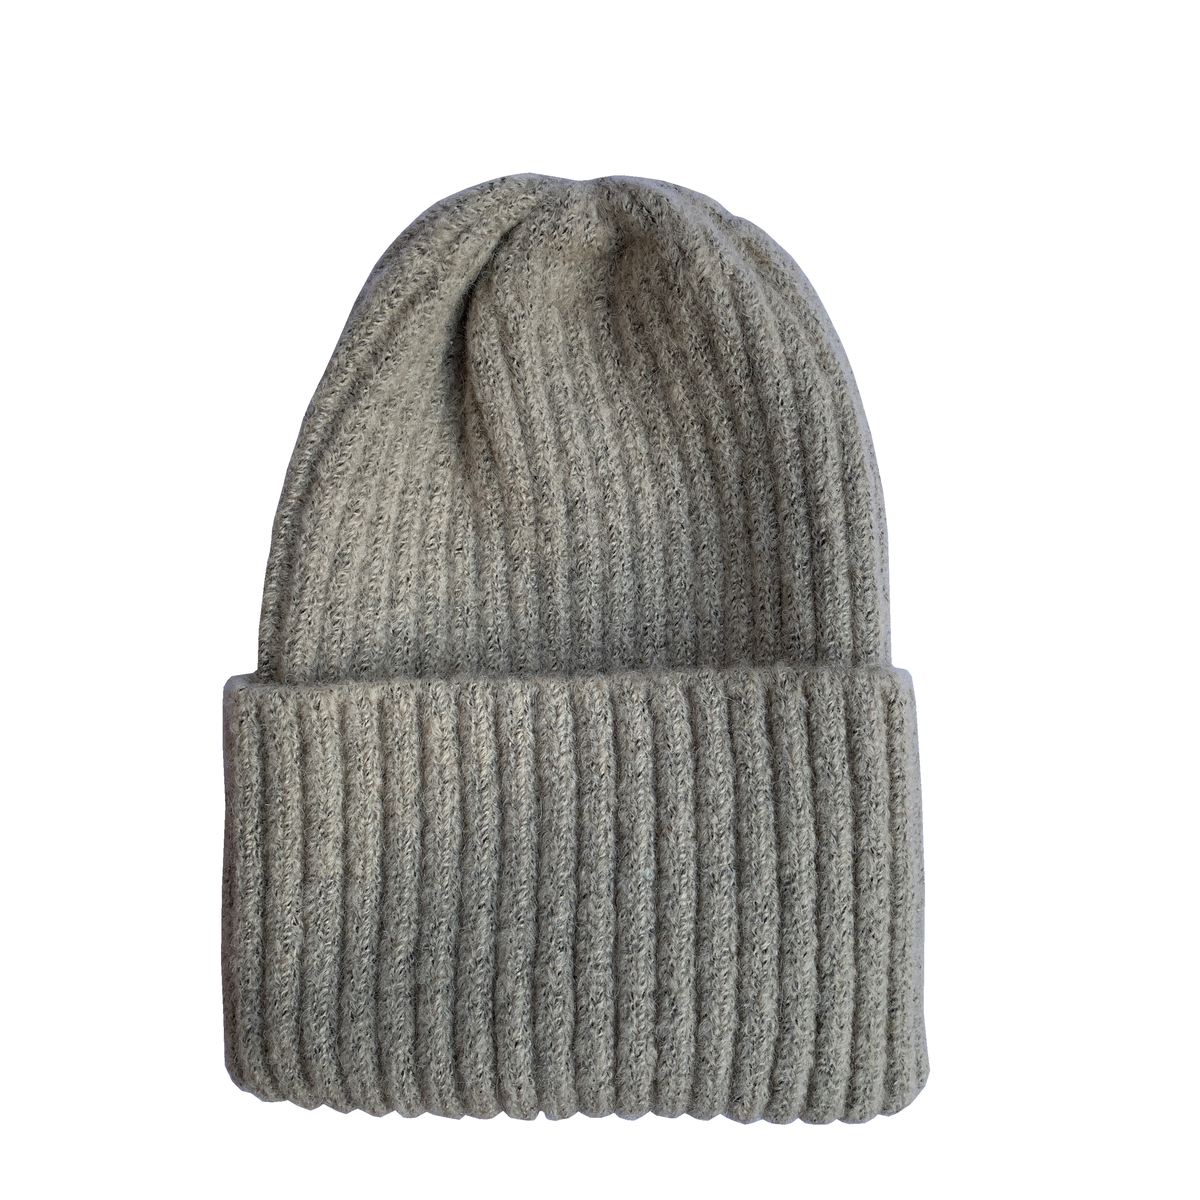 Image of Soft fisherman's style beanie/ watch cap. Beige